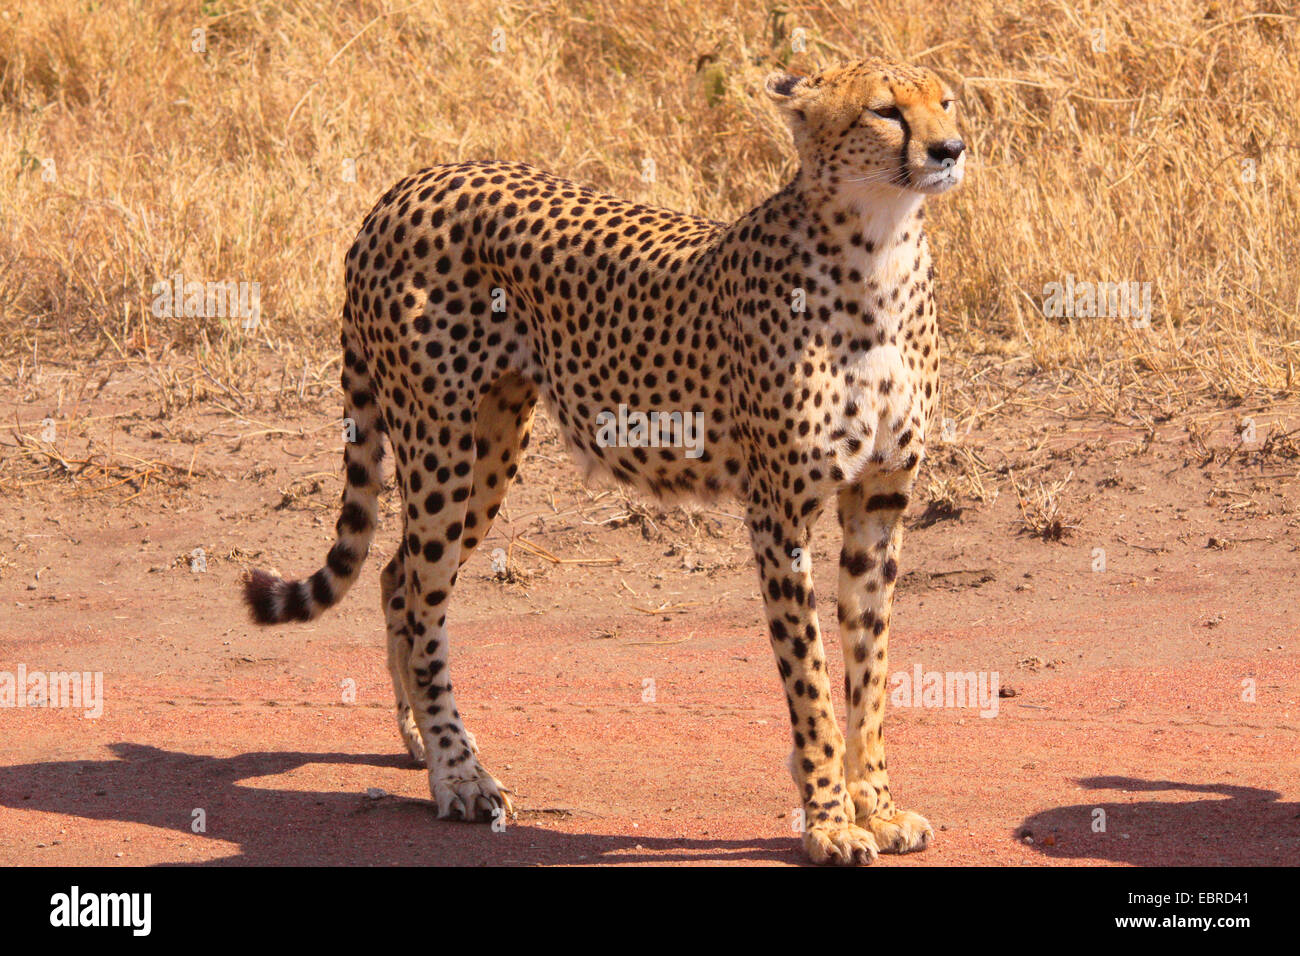 cheetah (Acinonyx jubatus), on the feed in savanna, Tanzania, Serengeti - Stock Image